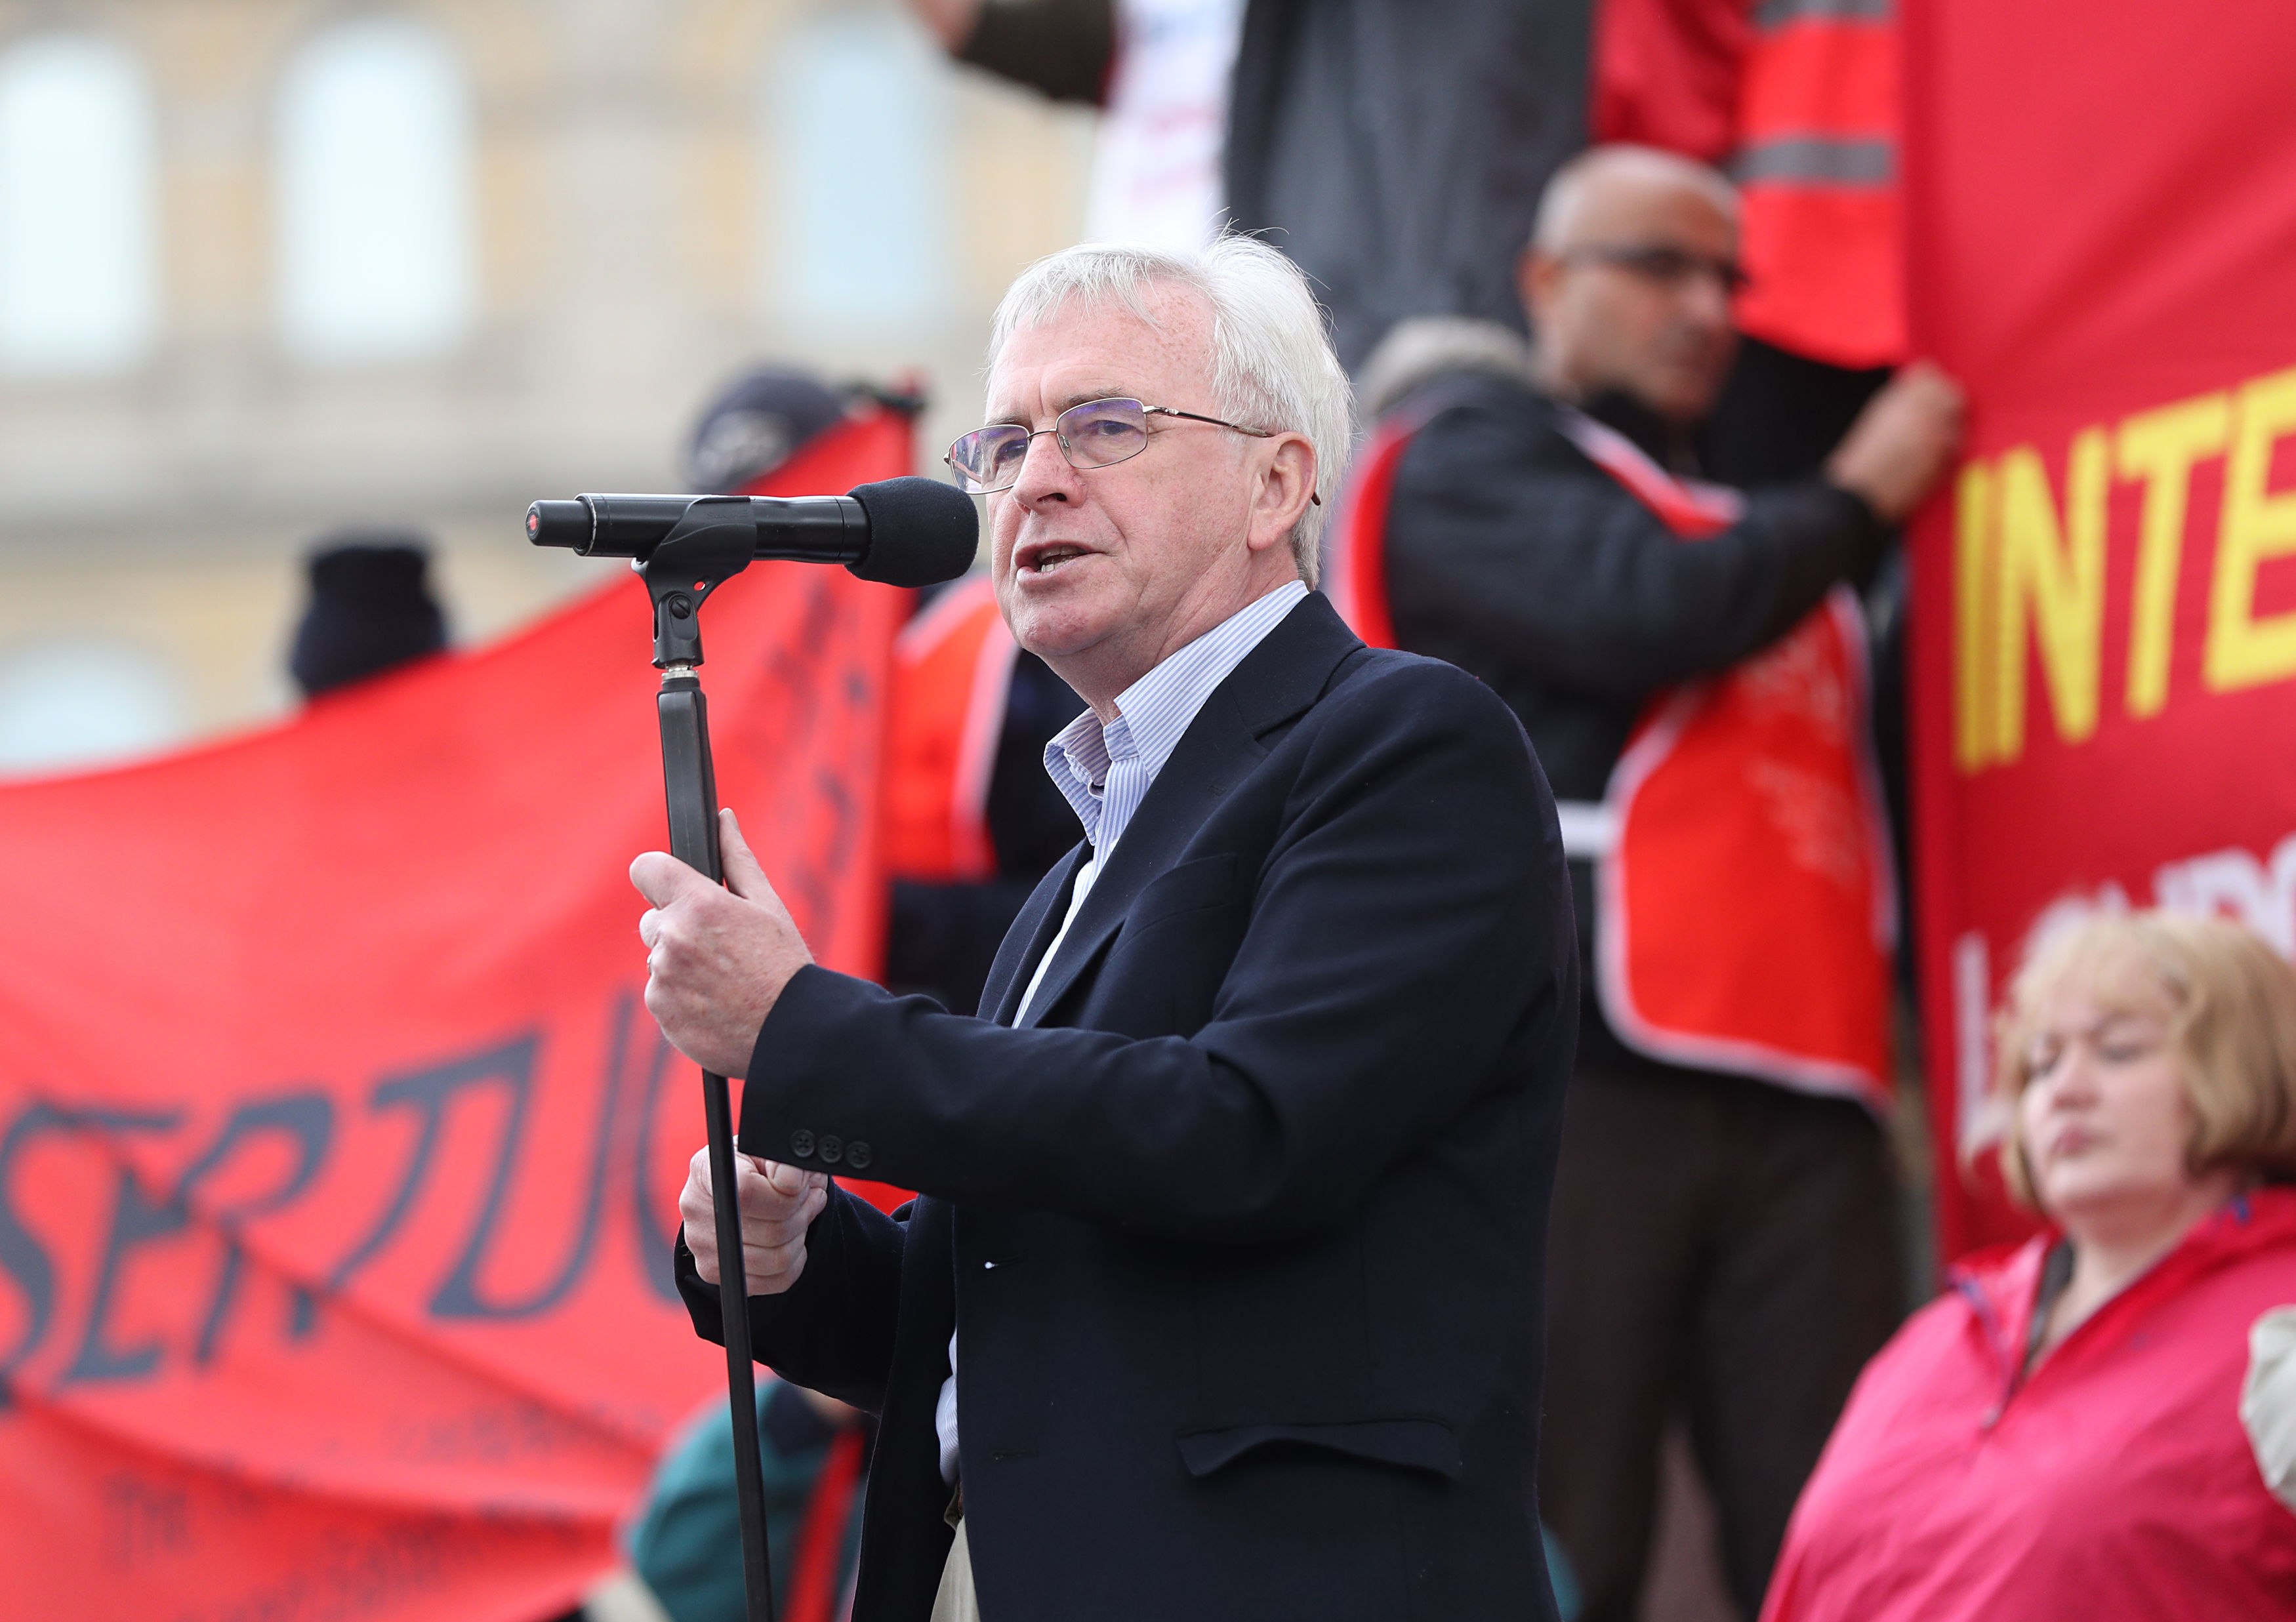 John McDonnell Spoke To Iain Dale